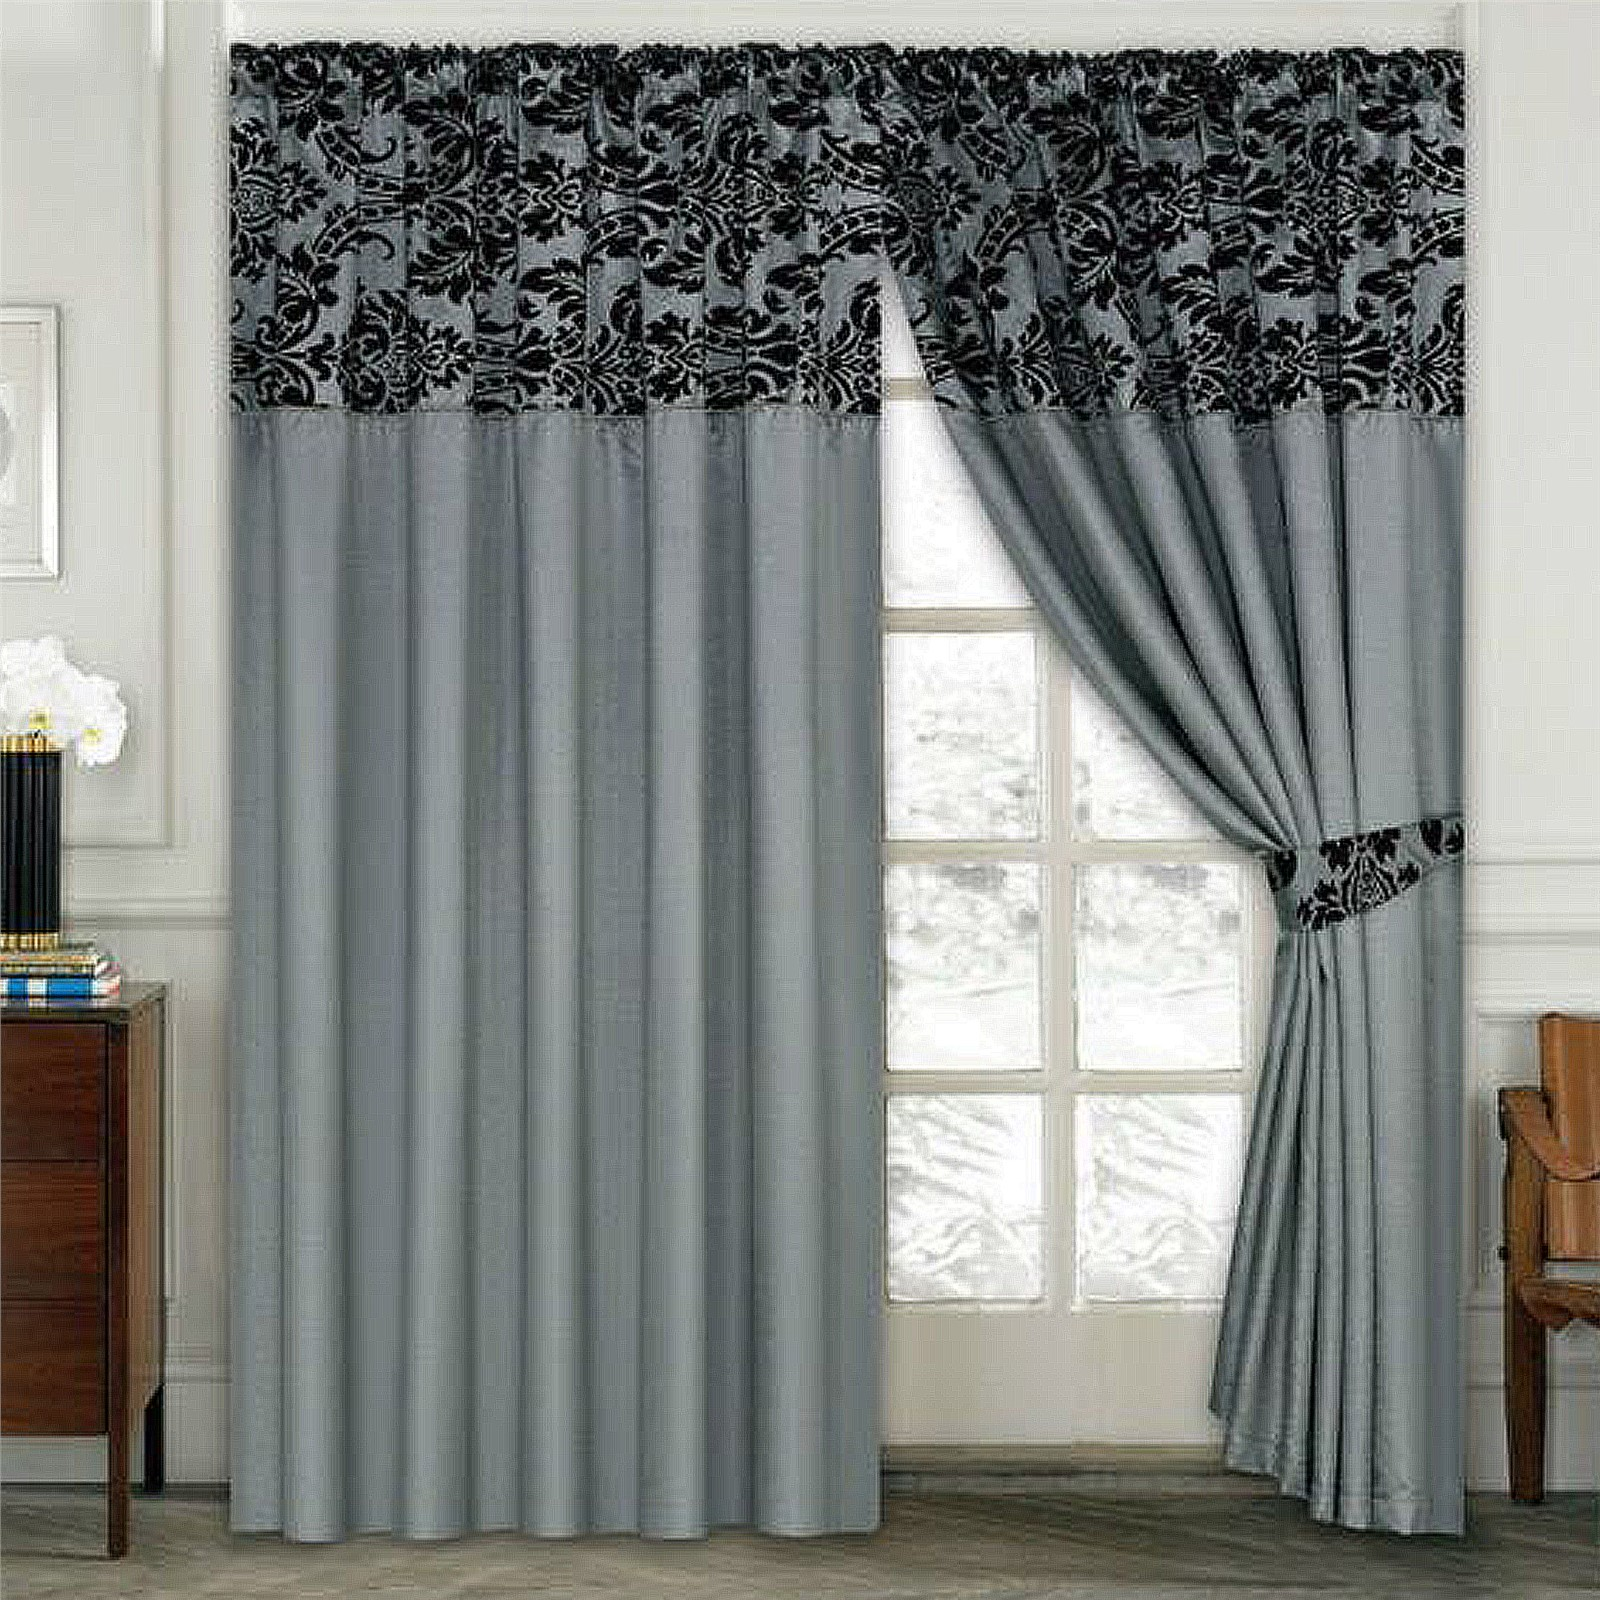 LUXURY Damask Curtains Pair Of Half Flock Pencil Pleat